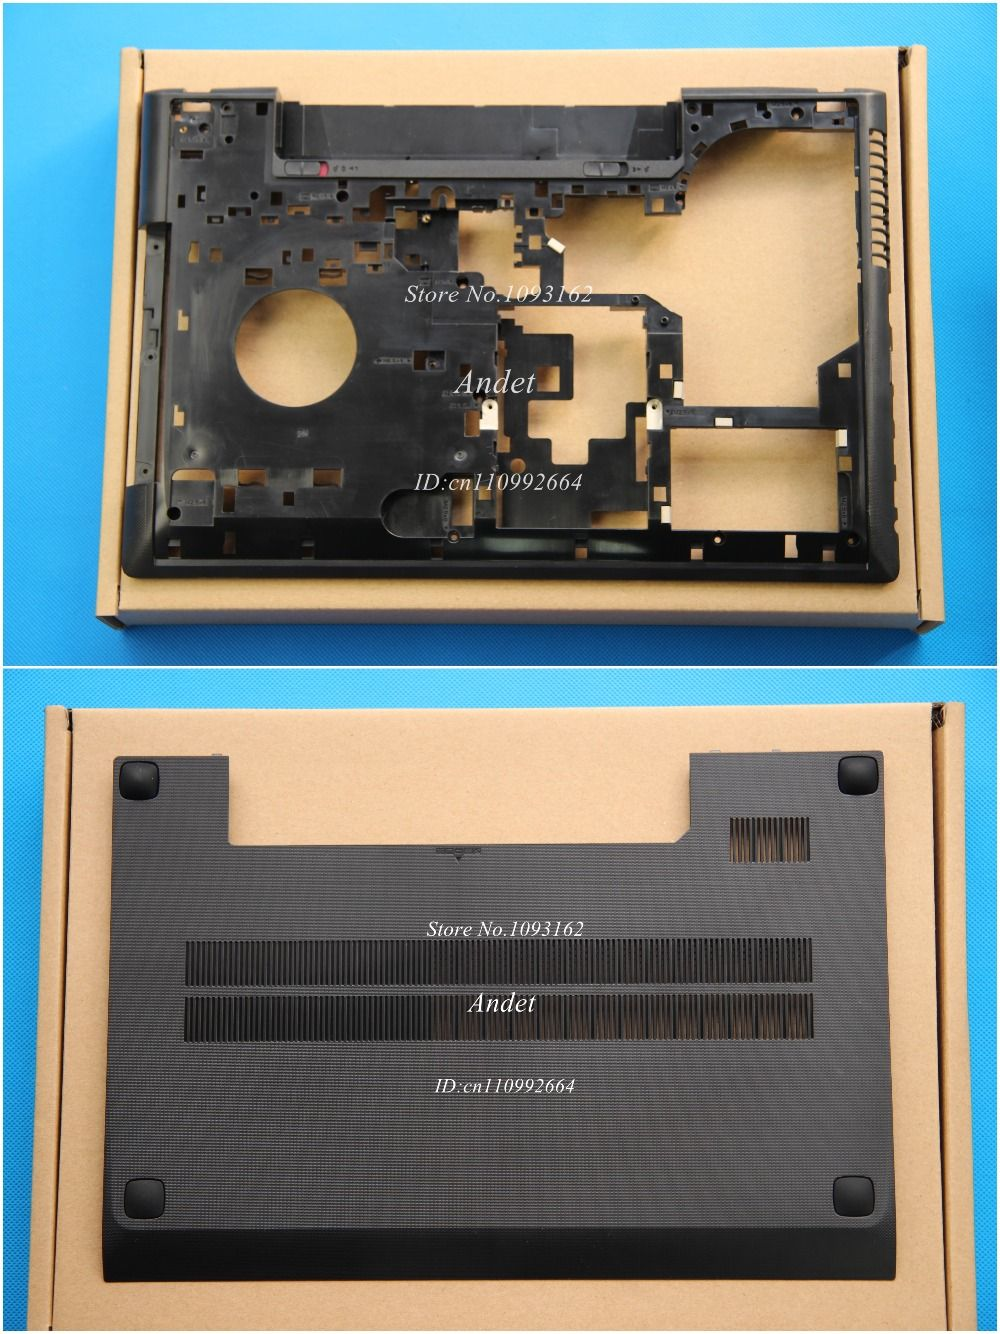 New Original For Lenovo G500 G505 G510 15 6 Base Bottom Cover Lower Case Door Ap0y0000700 Ap0y0000c00 The Originals Lowercase A Laptop Accessories